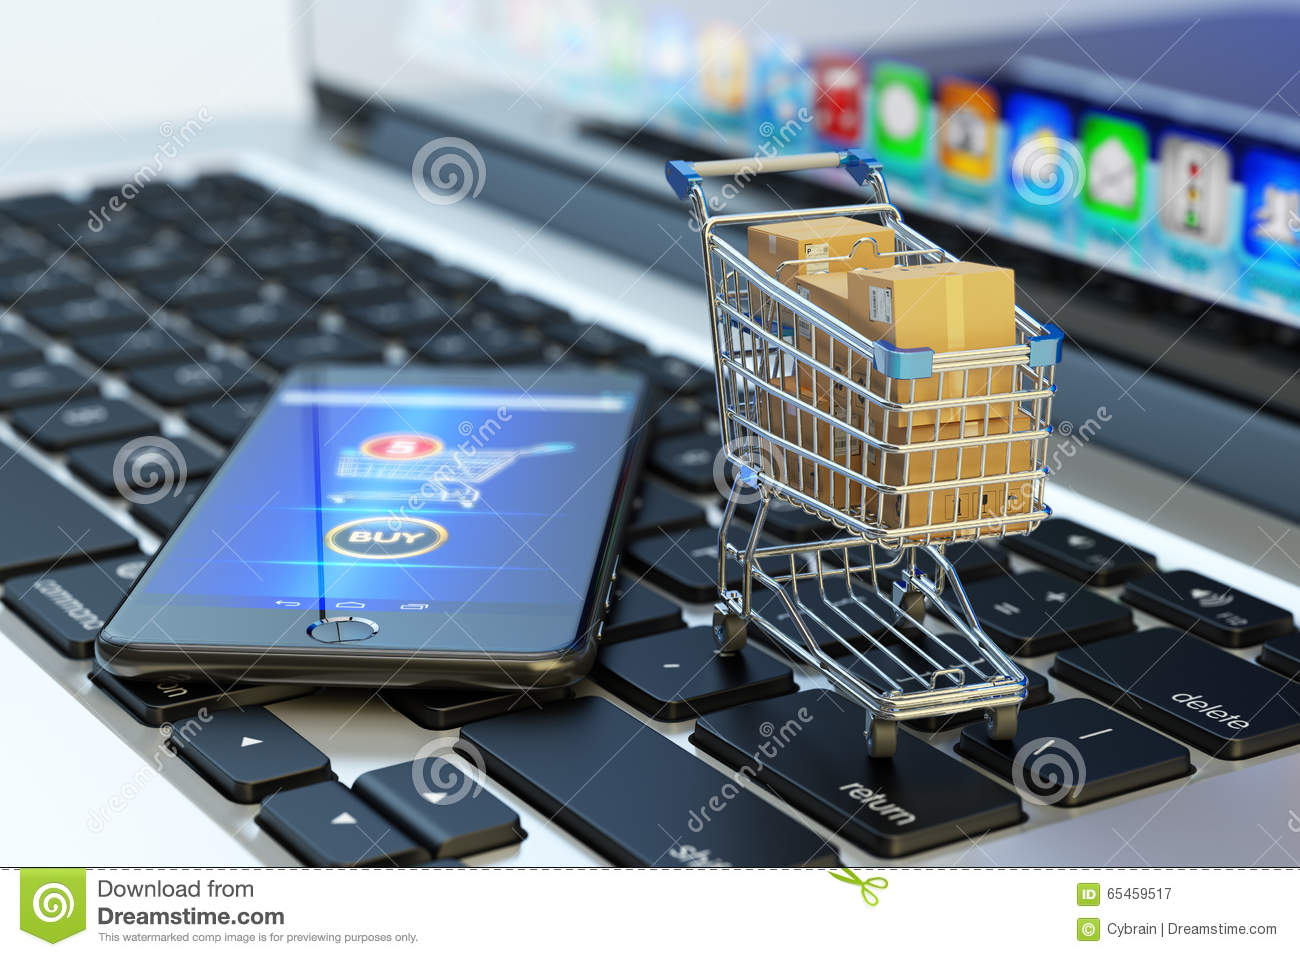 online-shopping-internet-purchases-e-commerce-concept-modern-mobile-phone-buy-button-screen-cart-full-package-65459517.jpg